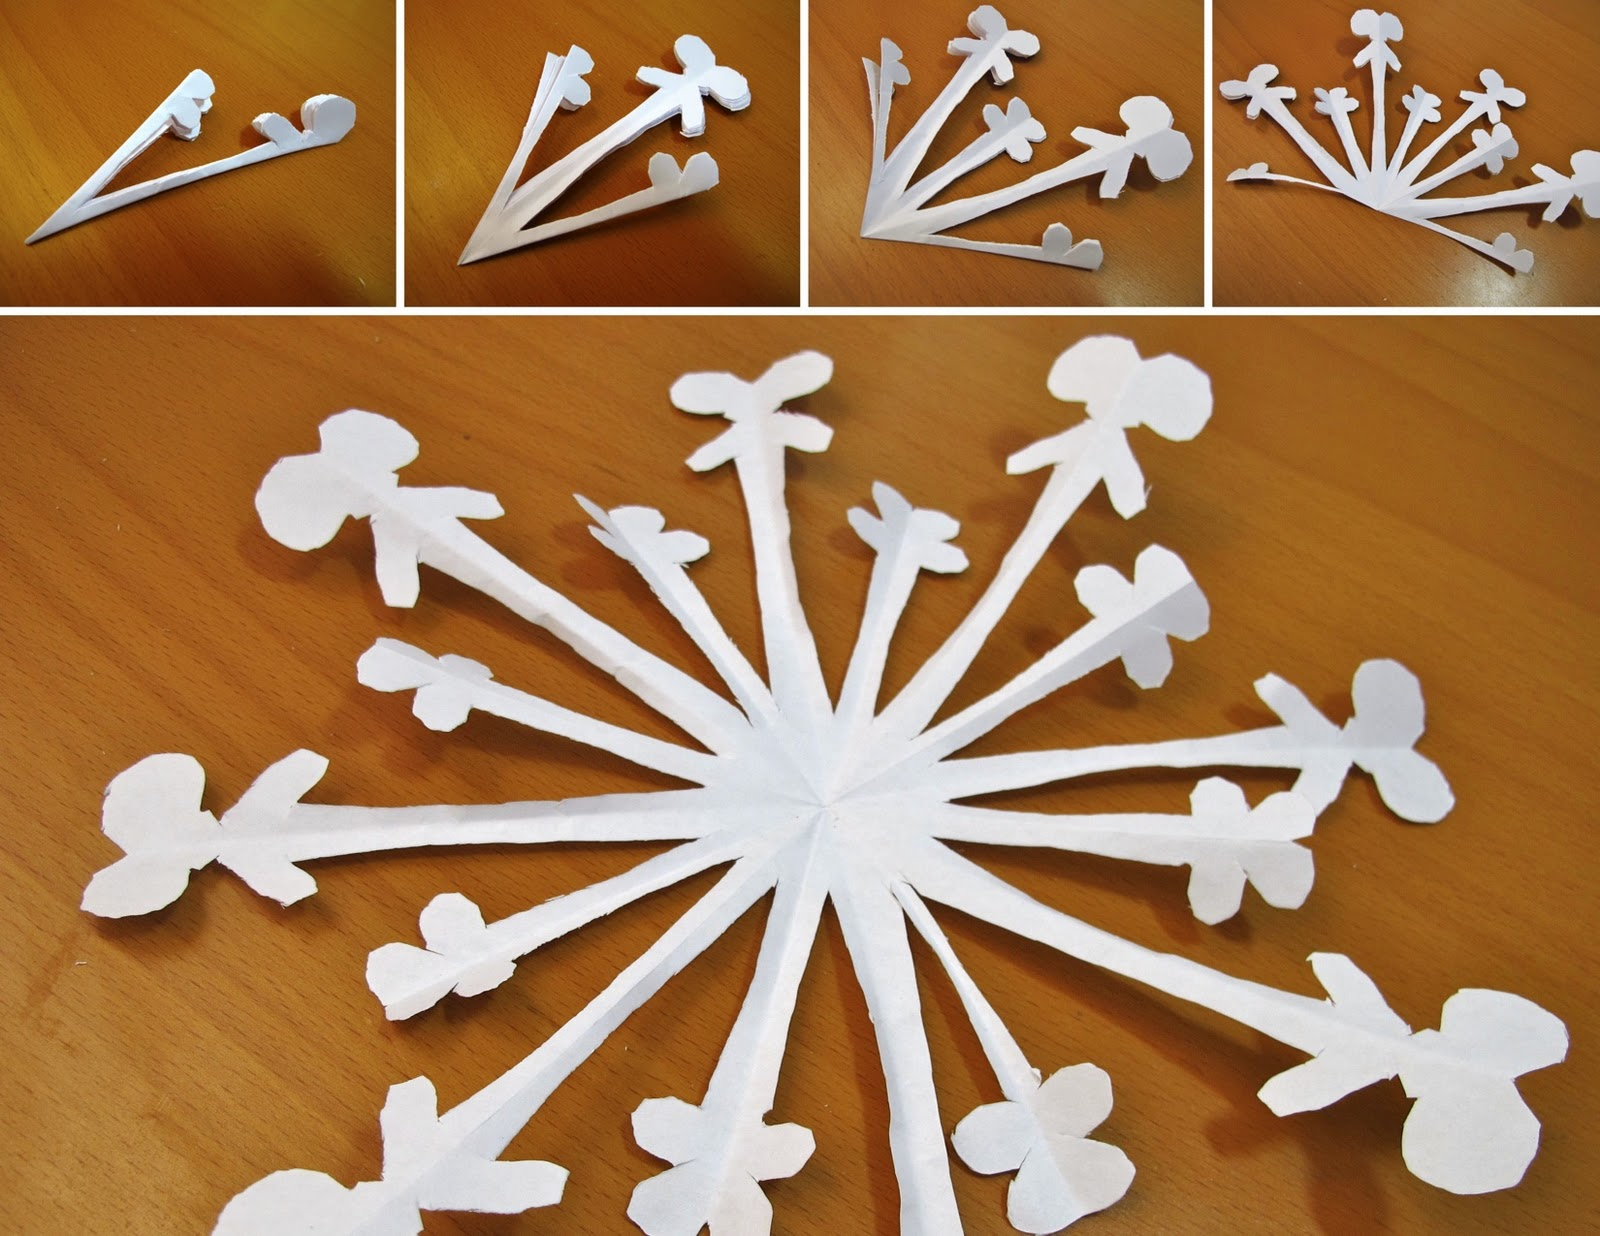 Paper Snowflake Cutting Patterns The more paper you cut out,